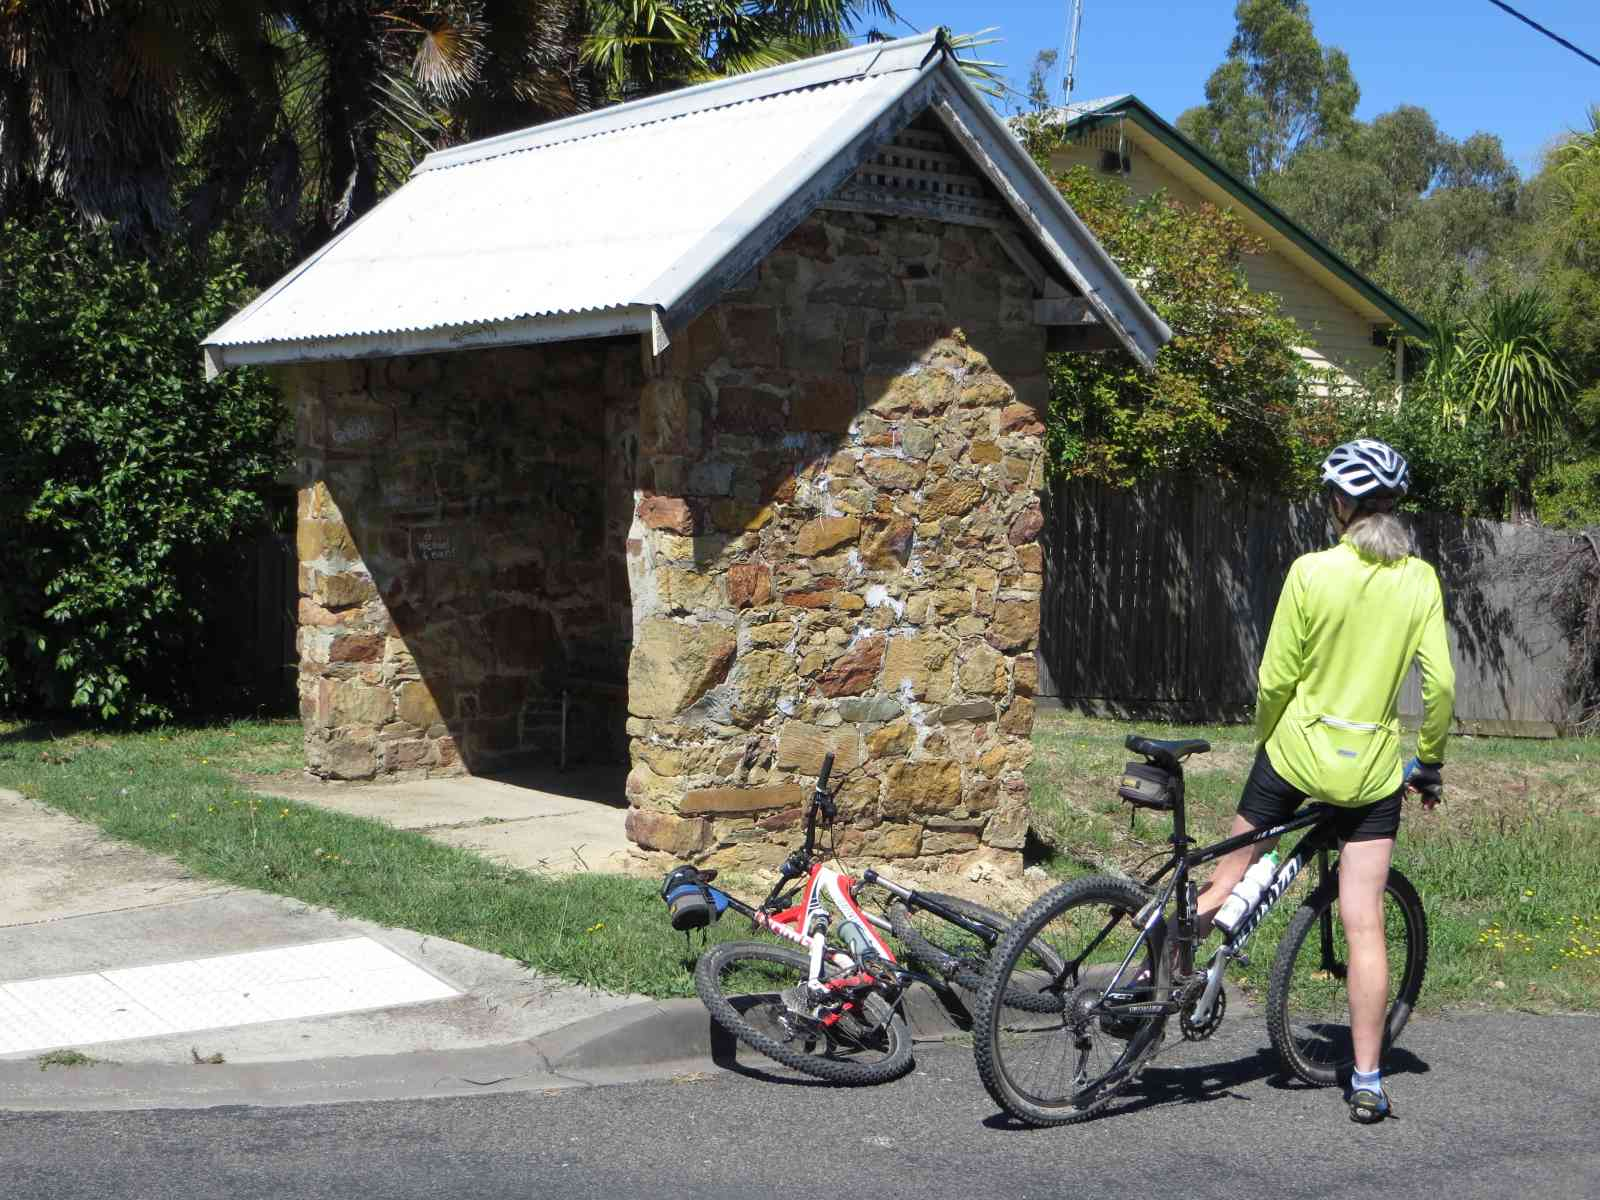 Stone bus shelter Fifth St